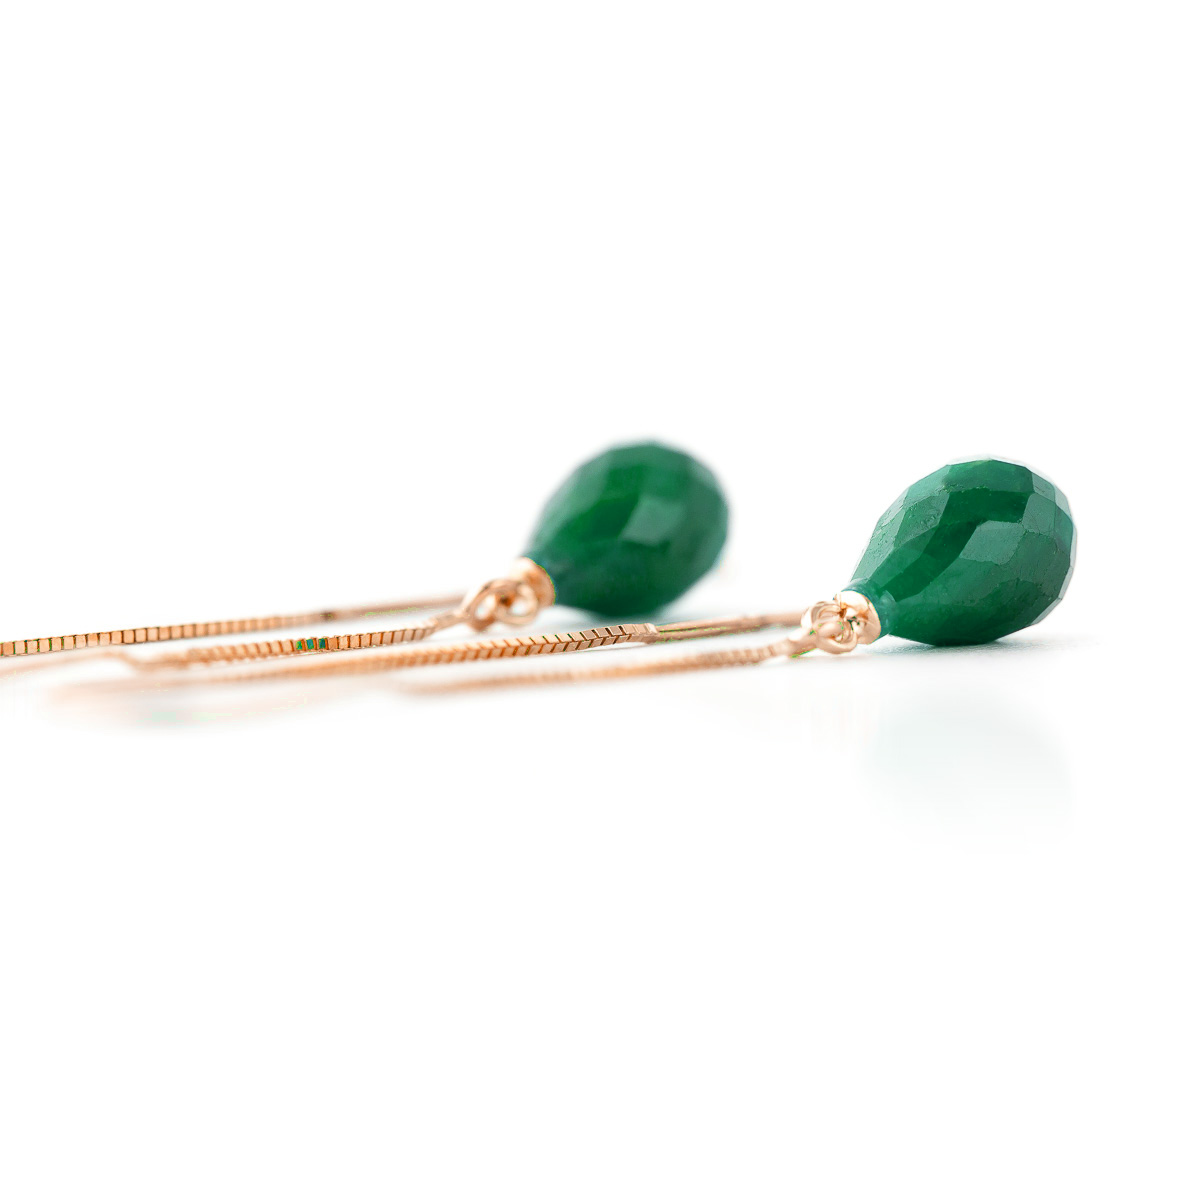 Emerald Scintilla Briolette Earrings 6.6ctw in 9ct Rose Gold